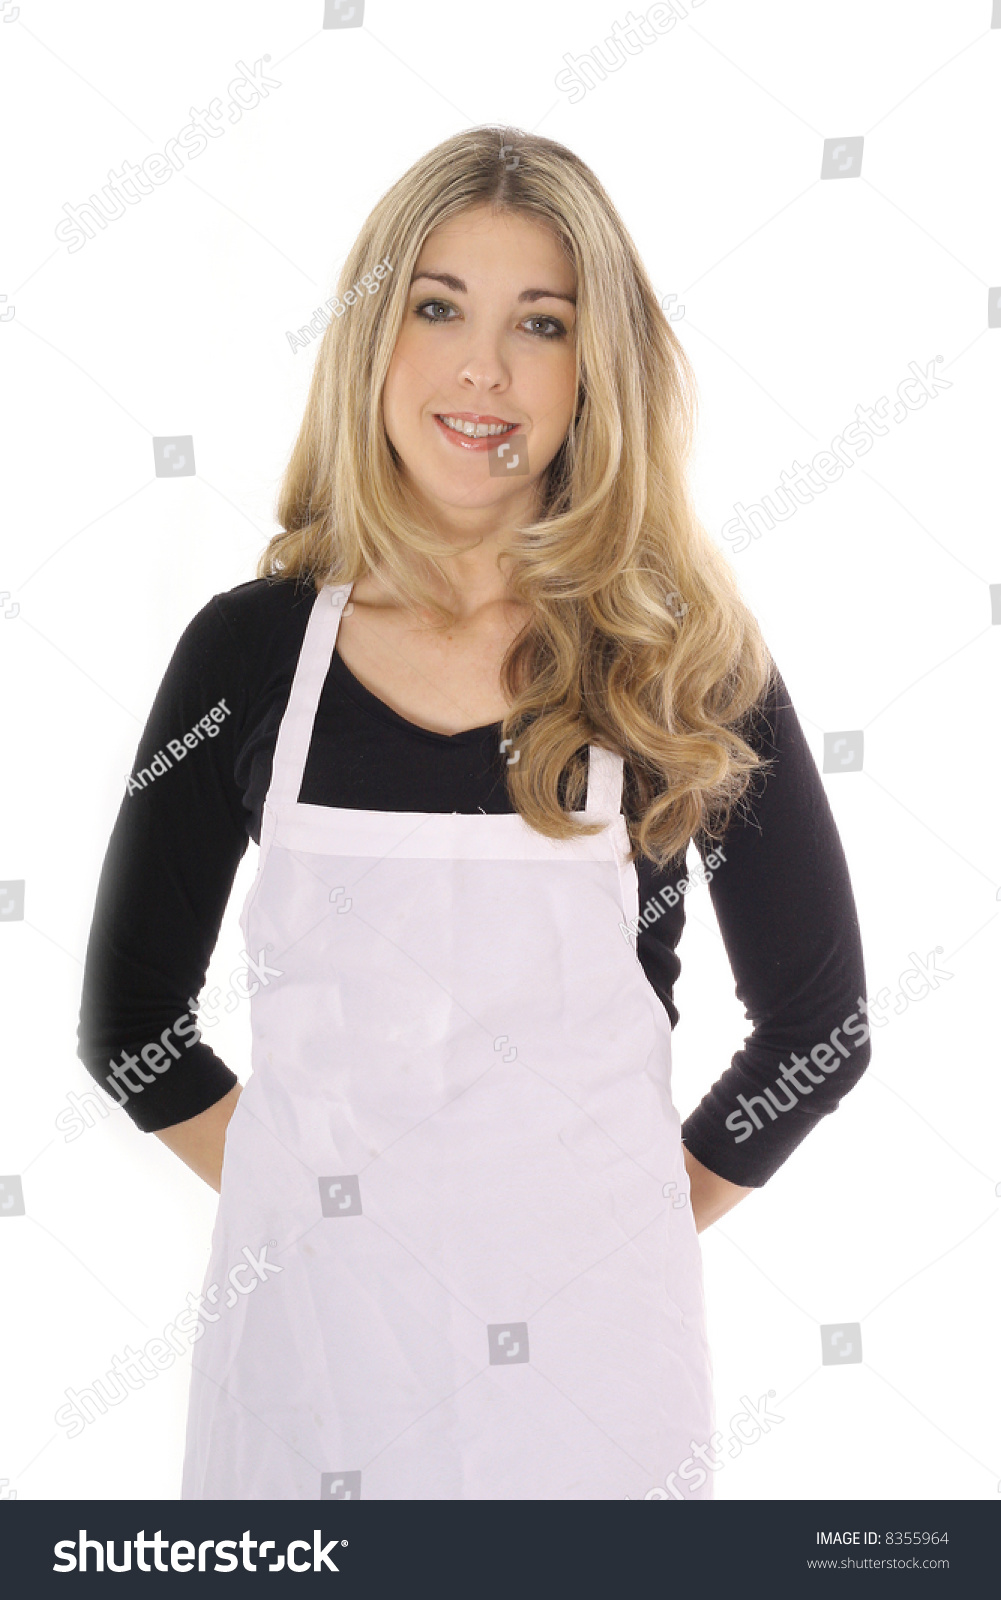 White apron girl - Beautiful Woman In Apron Isolated On White